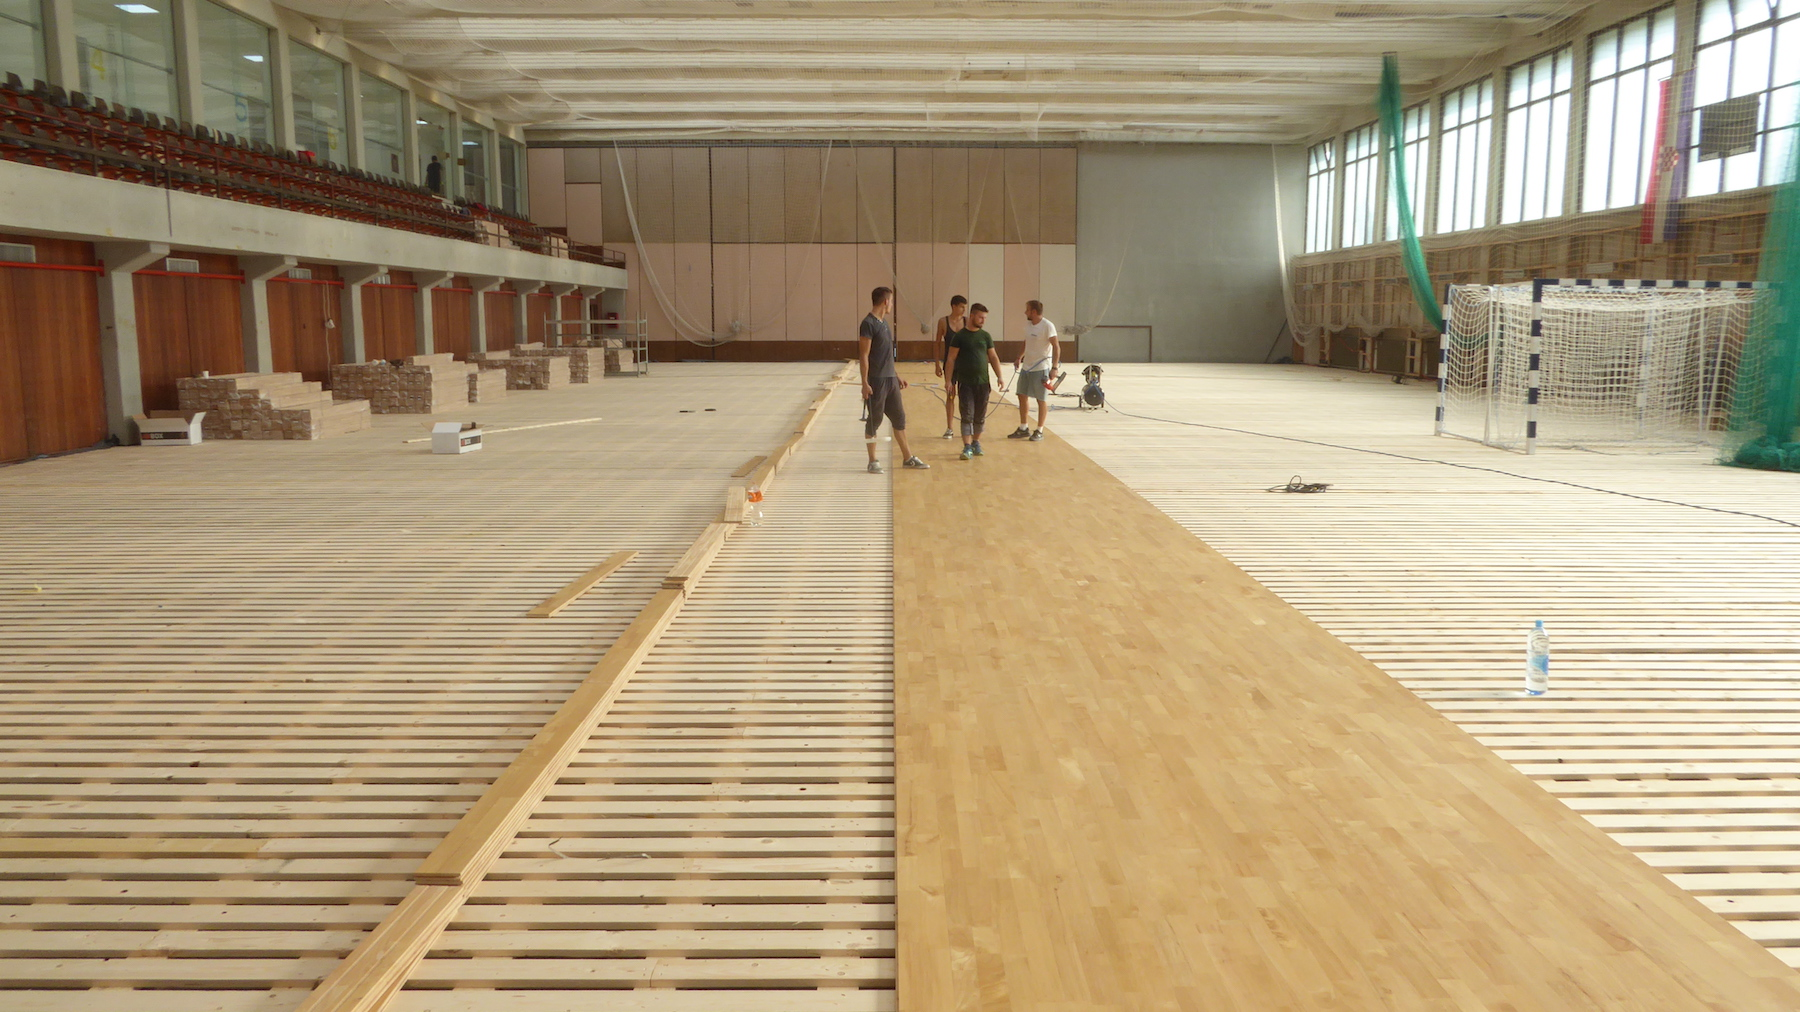 Laying of sports parquet